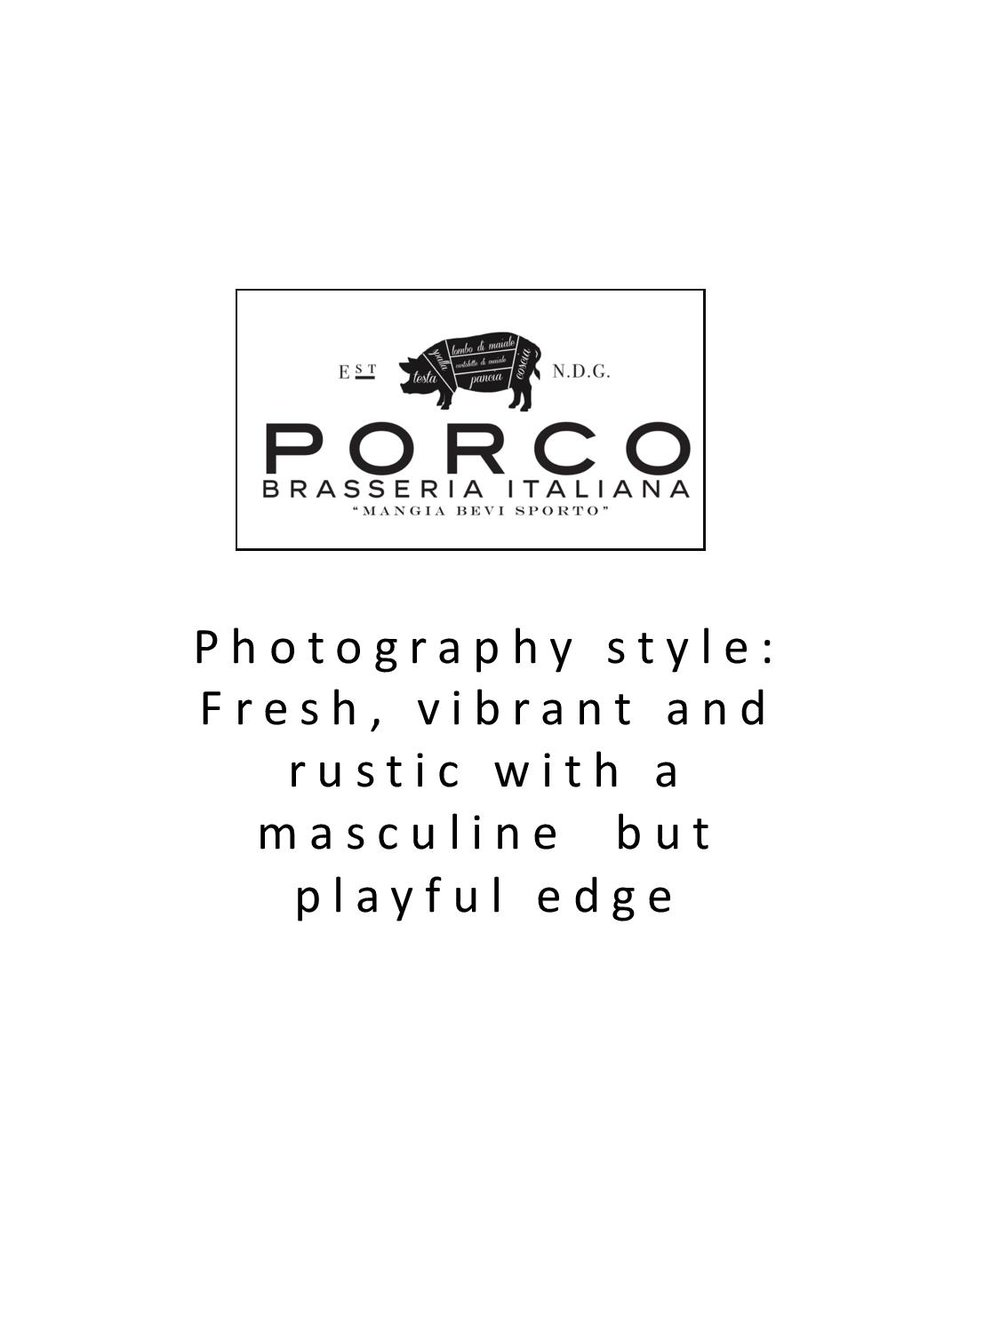 Porcos proposal-page-001.jpg